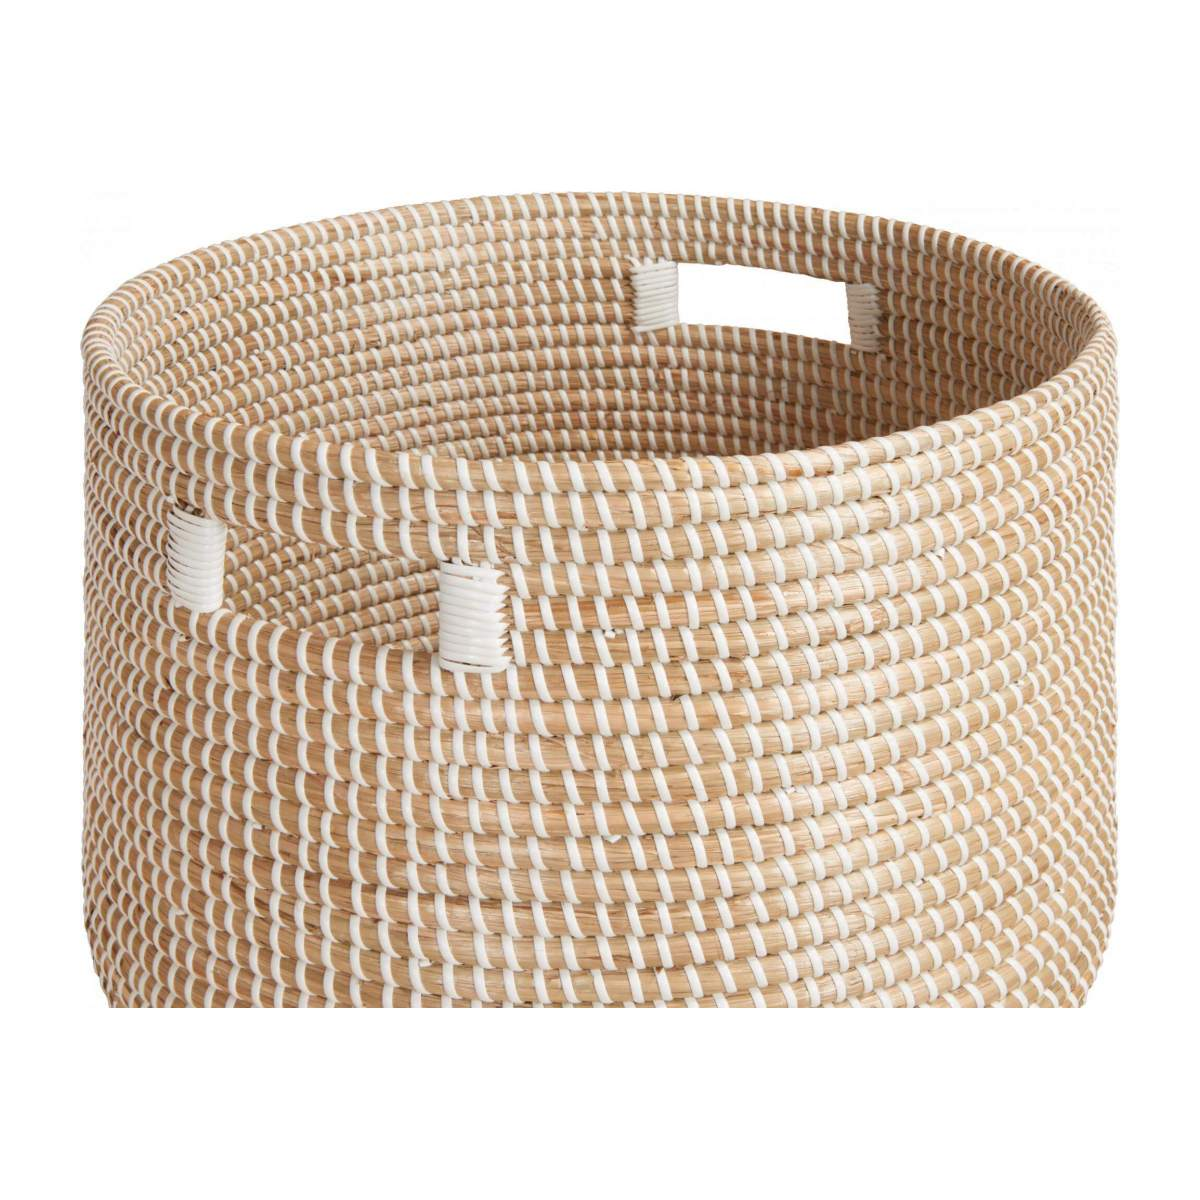 Basket 30cm with storage spaces made of seagrass n°3